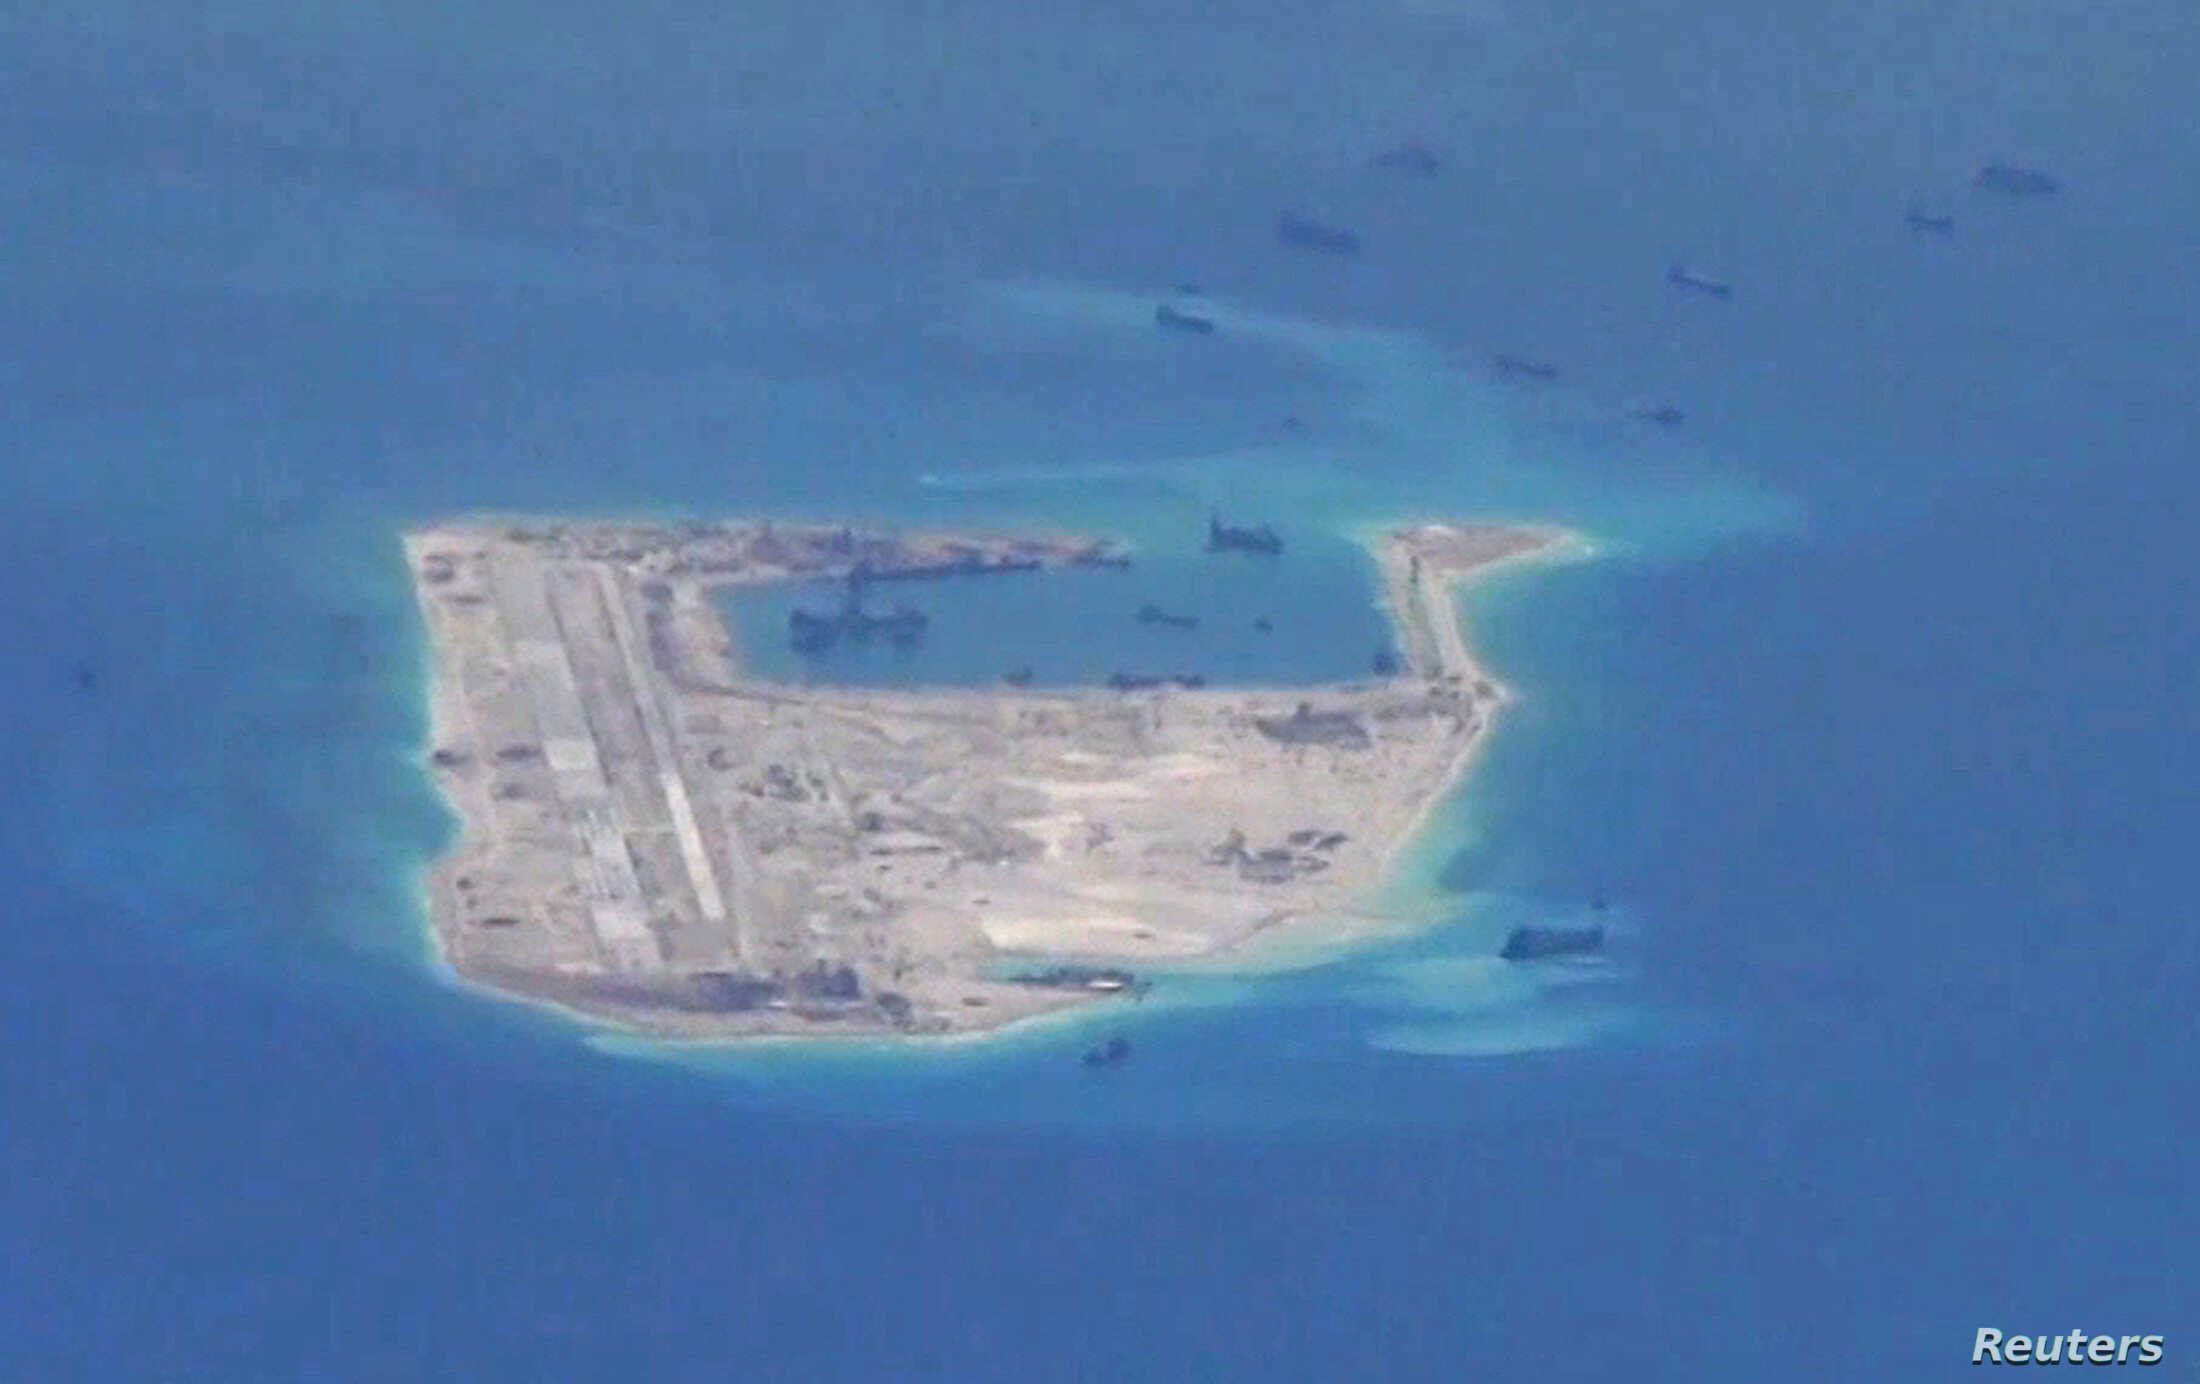 FILE PHOTO - Chinese dredging vessels are purportedly seen in the waters around Fiery Cross Reef in the disputed Spratly Islands in the South China Sea in this still image taken by a P-8A Poseidon surveillance aircraft, May 21, 2015.